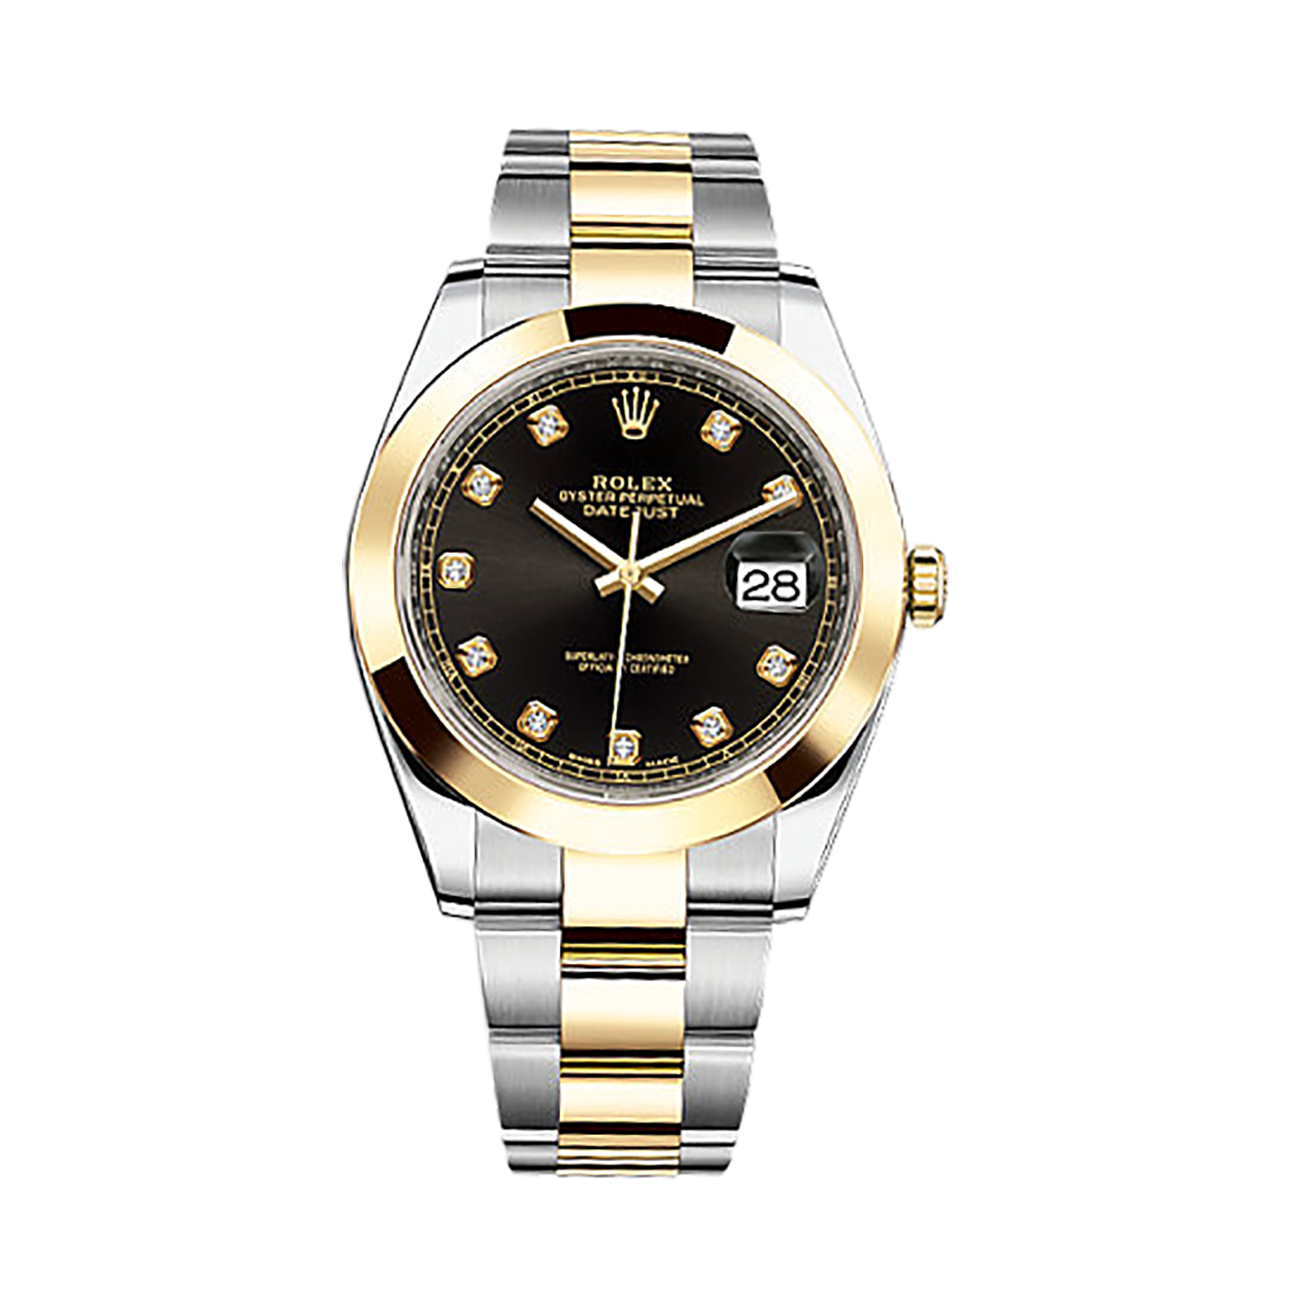 Rolex Datejust Black Diamond Dial 126303 replica watch